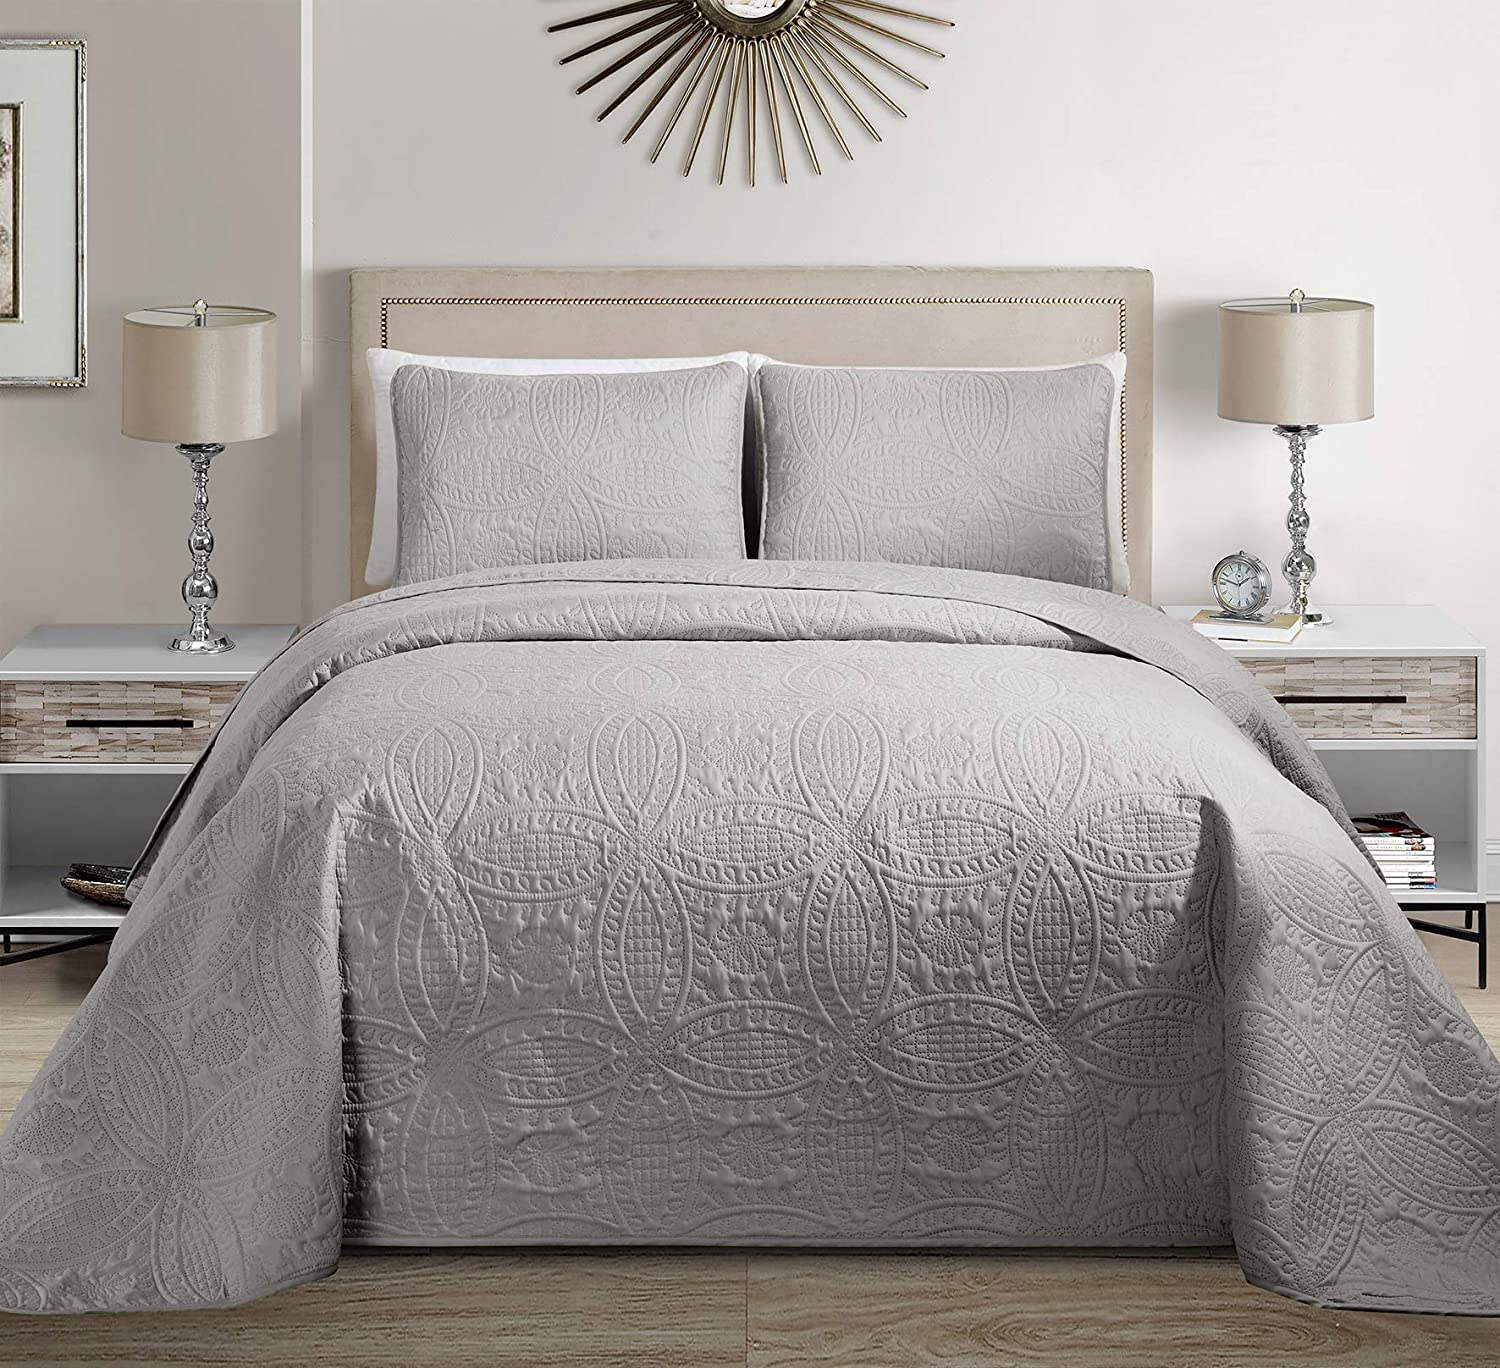 MK Home Mk Collection 3pc King/California King Solid Embossed Bedspread Bed Cover Over Size Silver New